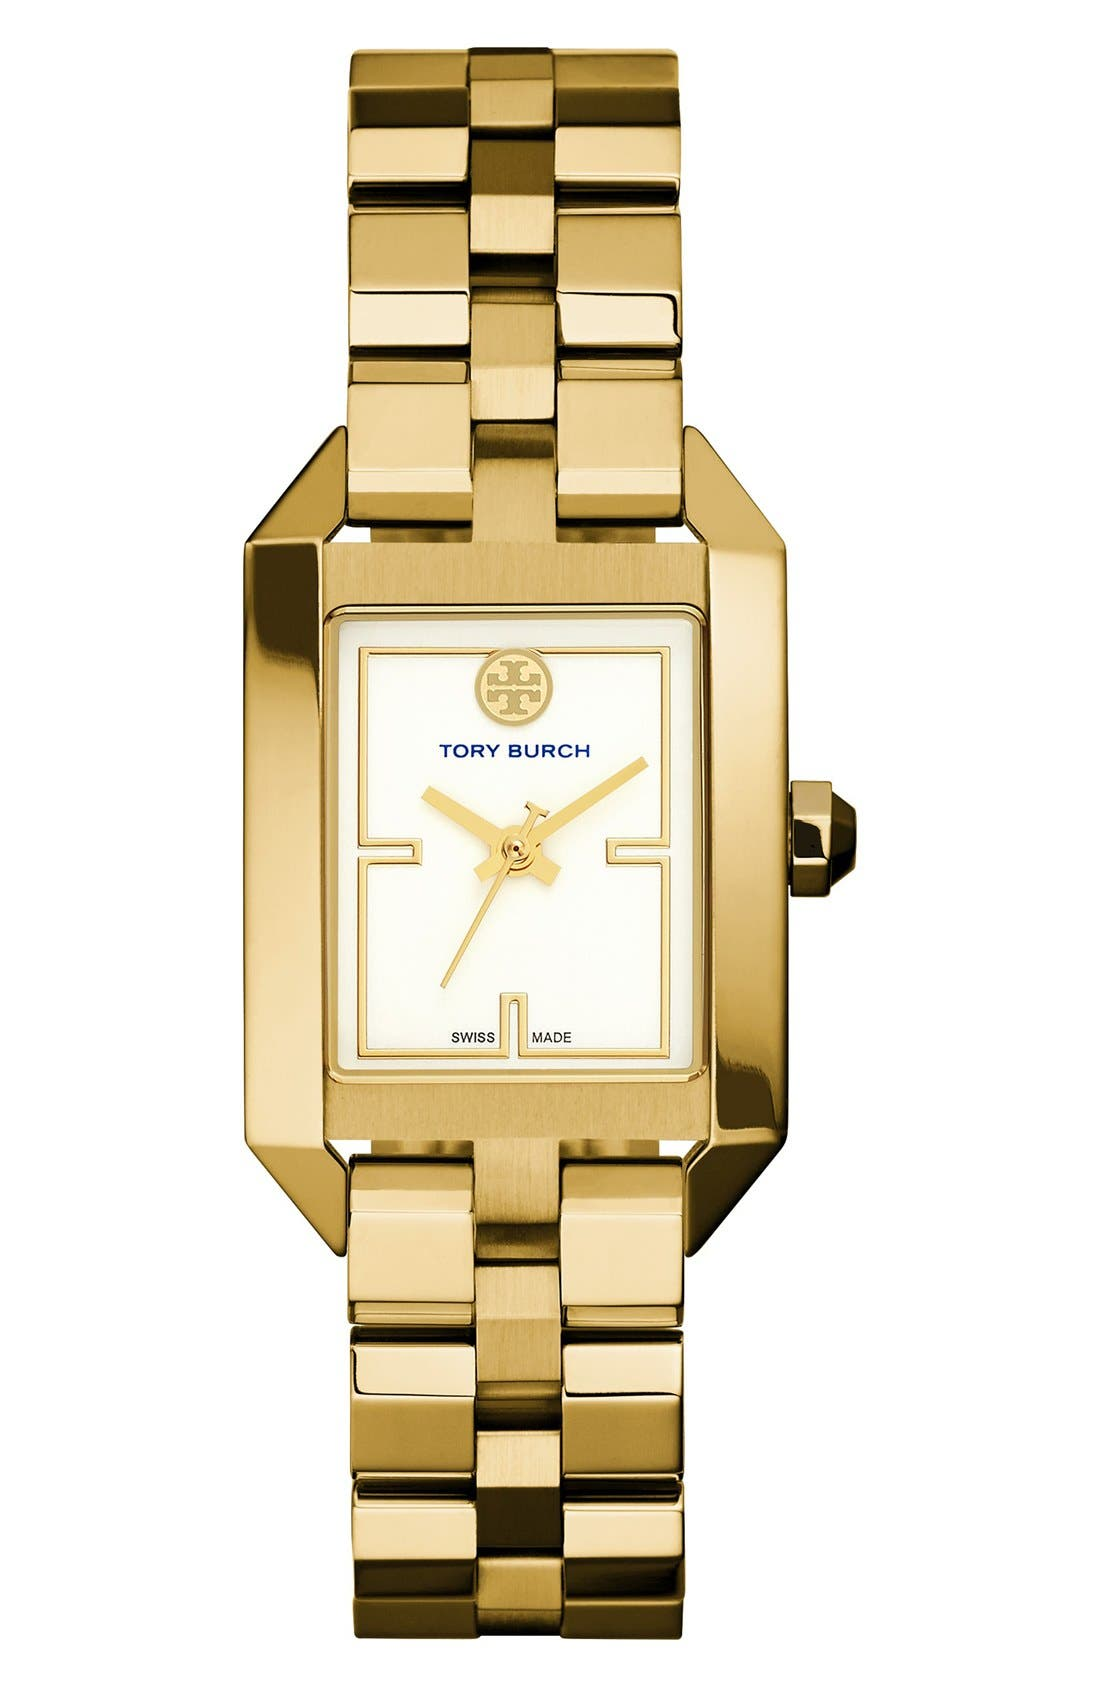 Main Image - Tory Burch 'Dalloway' Bracelet Watch, 23mm x 35mm